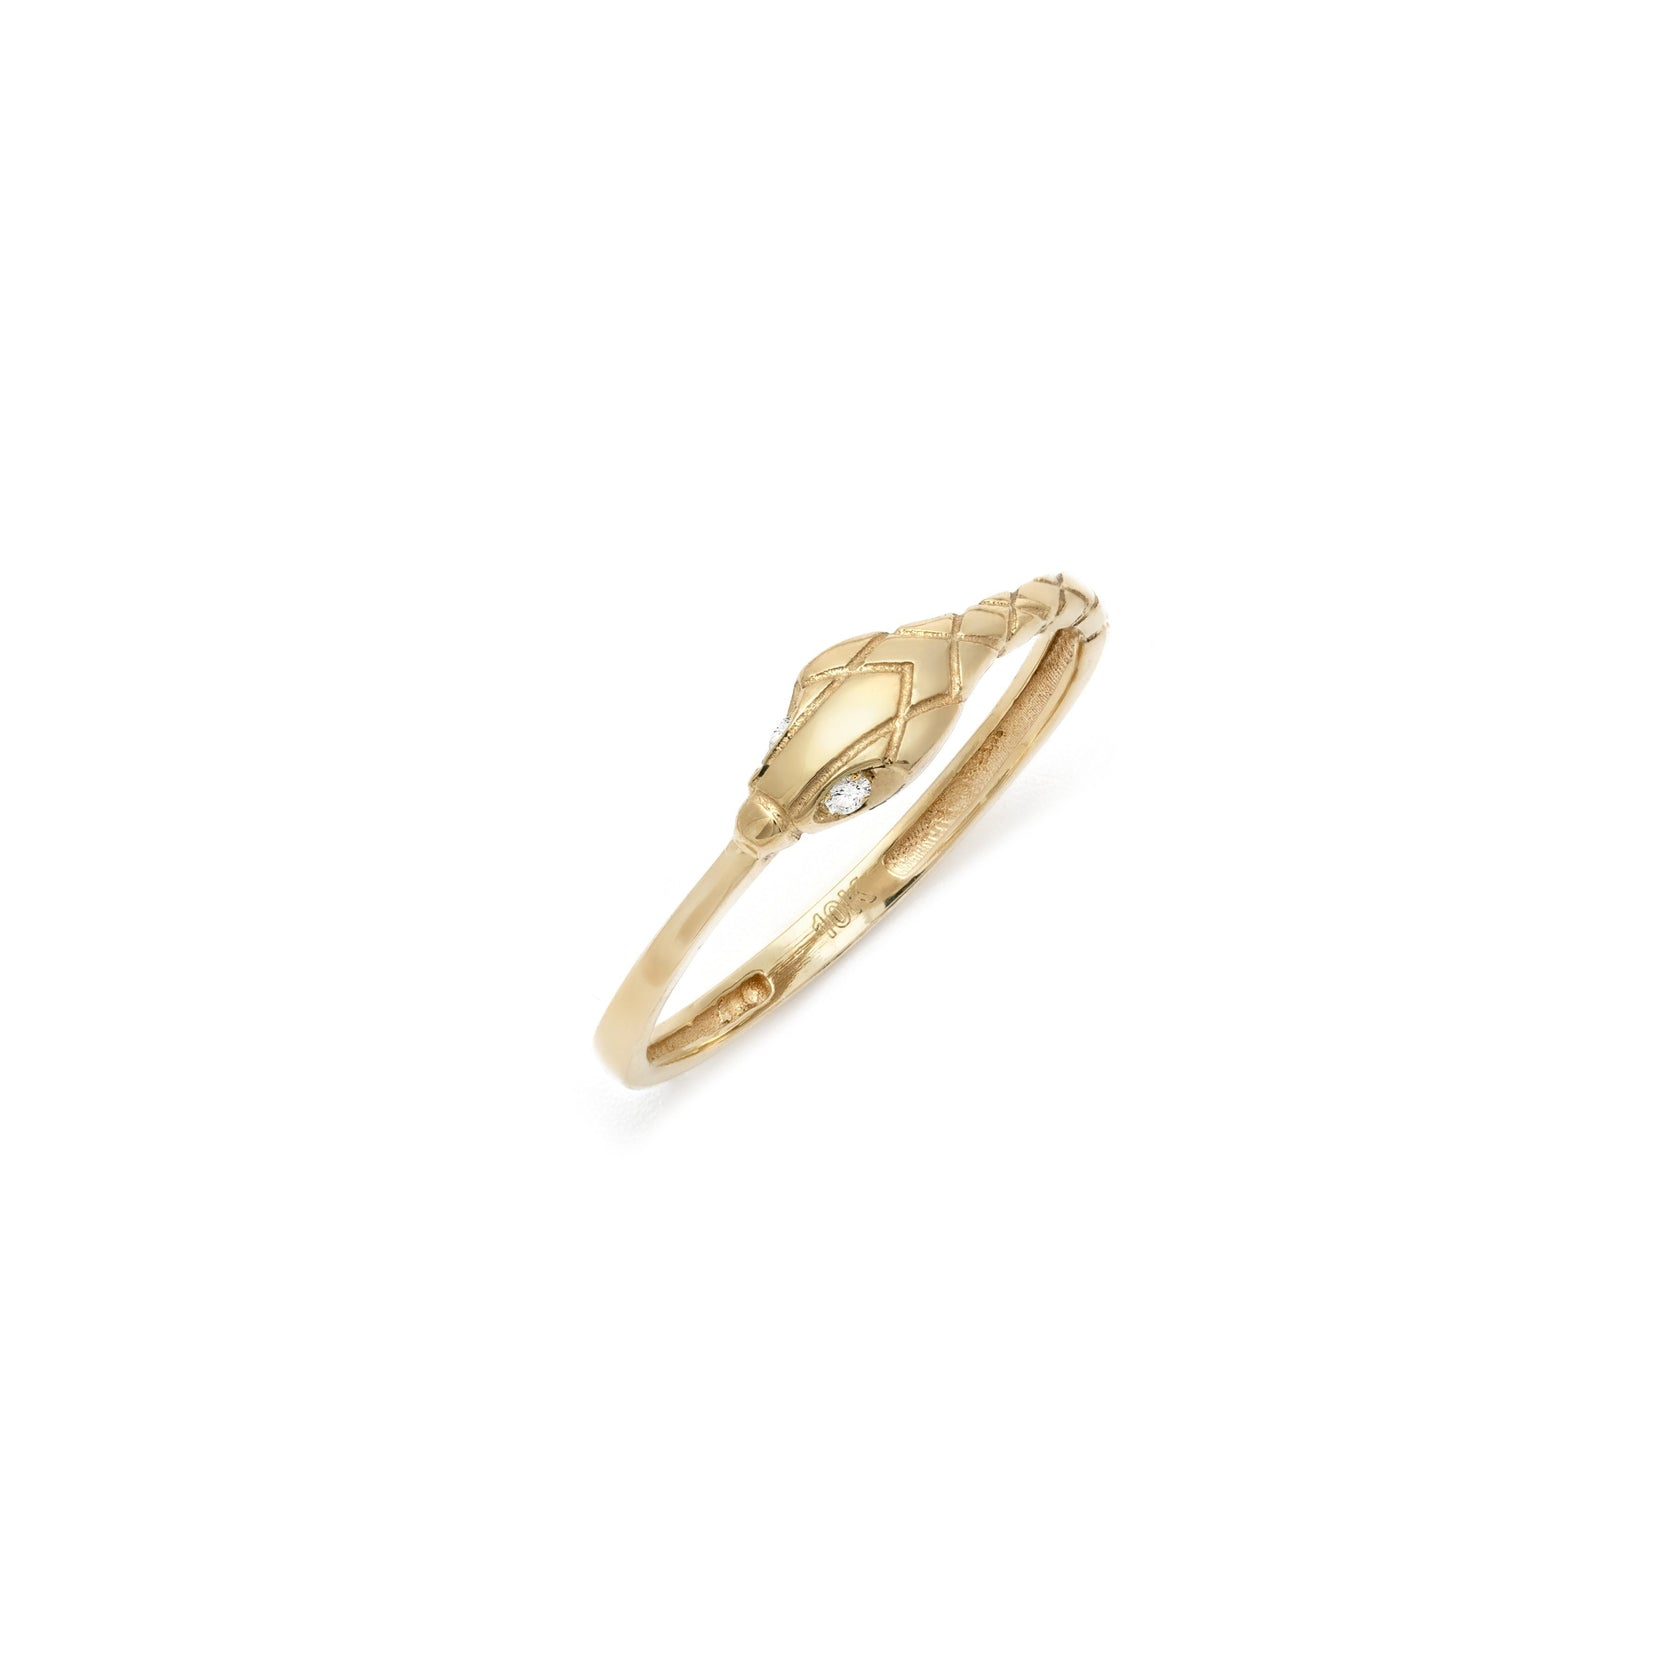 Diamond Serpent Ring - 10k Solid Gold